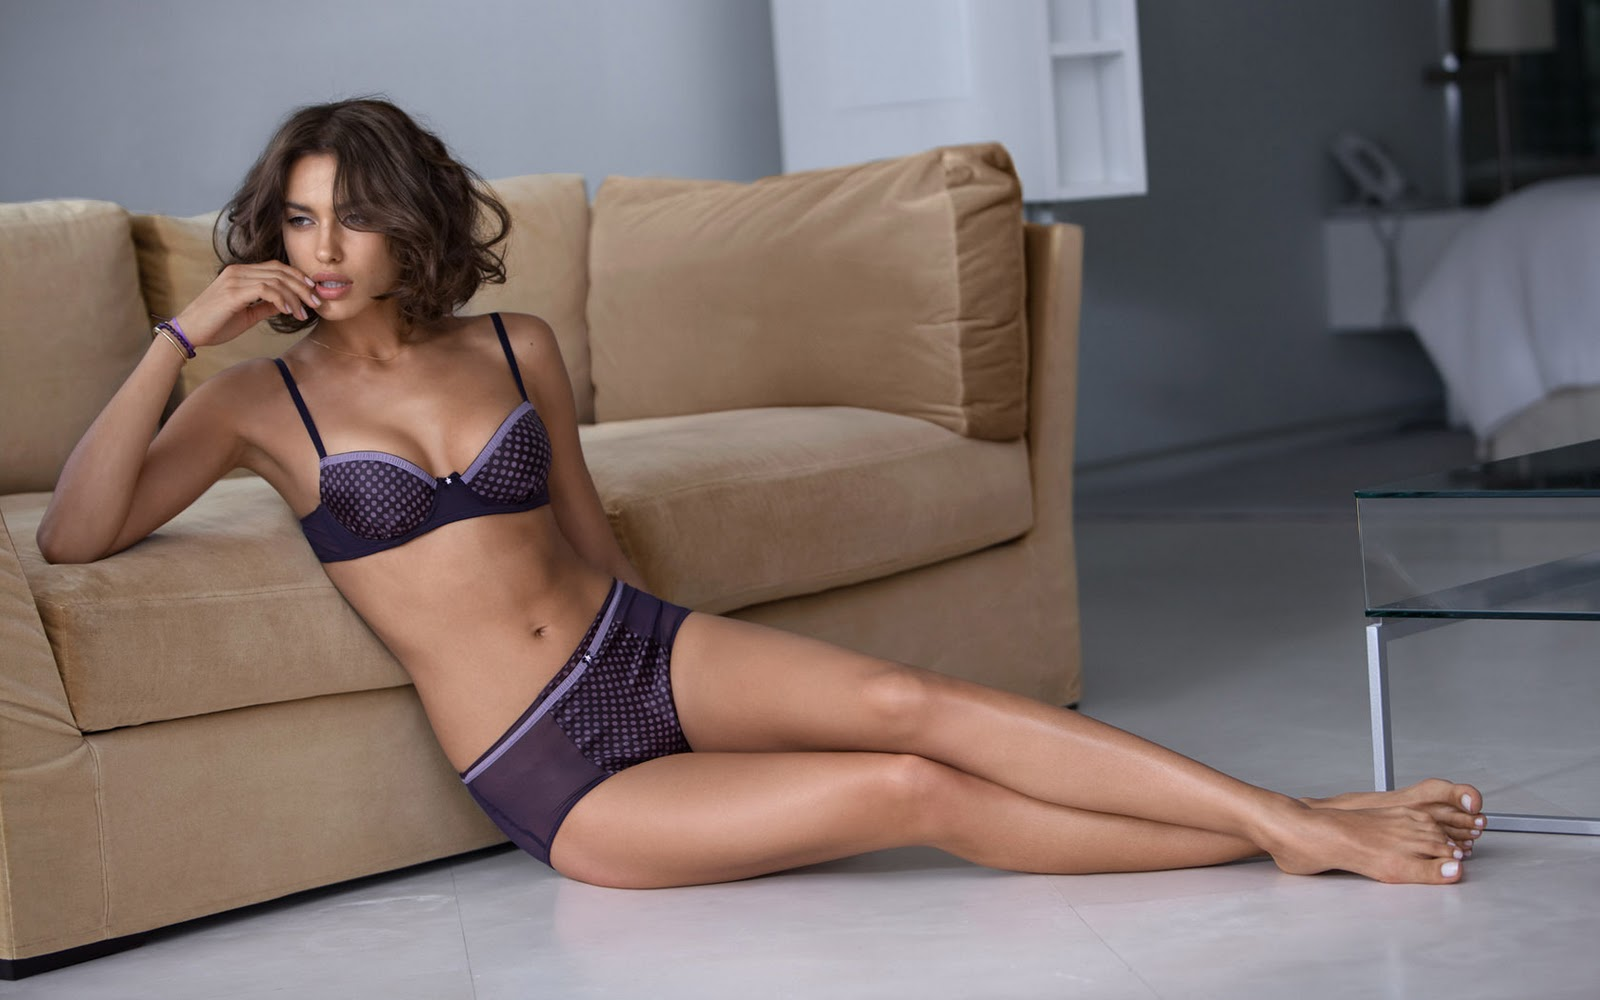 Irina Shayk Pictures, Wallpapers, And Images  Hollywood -5827